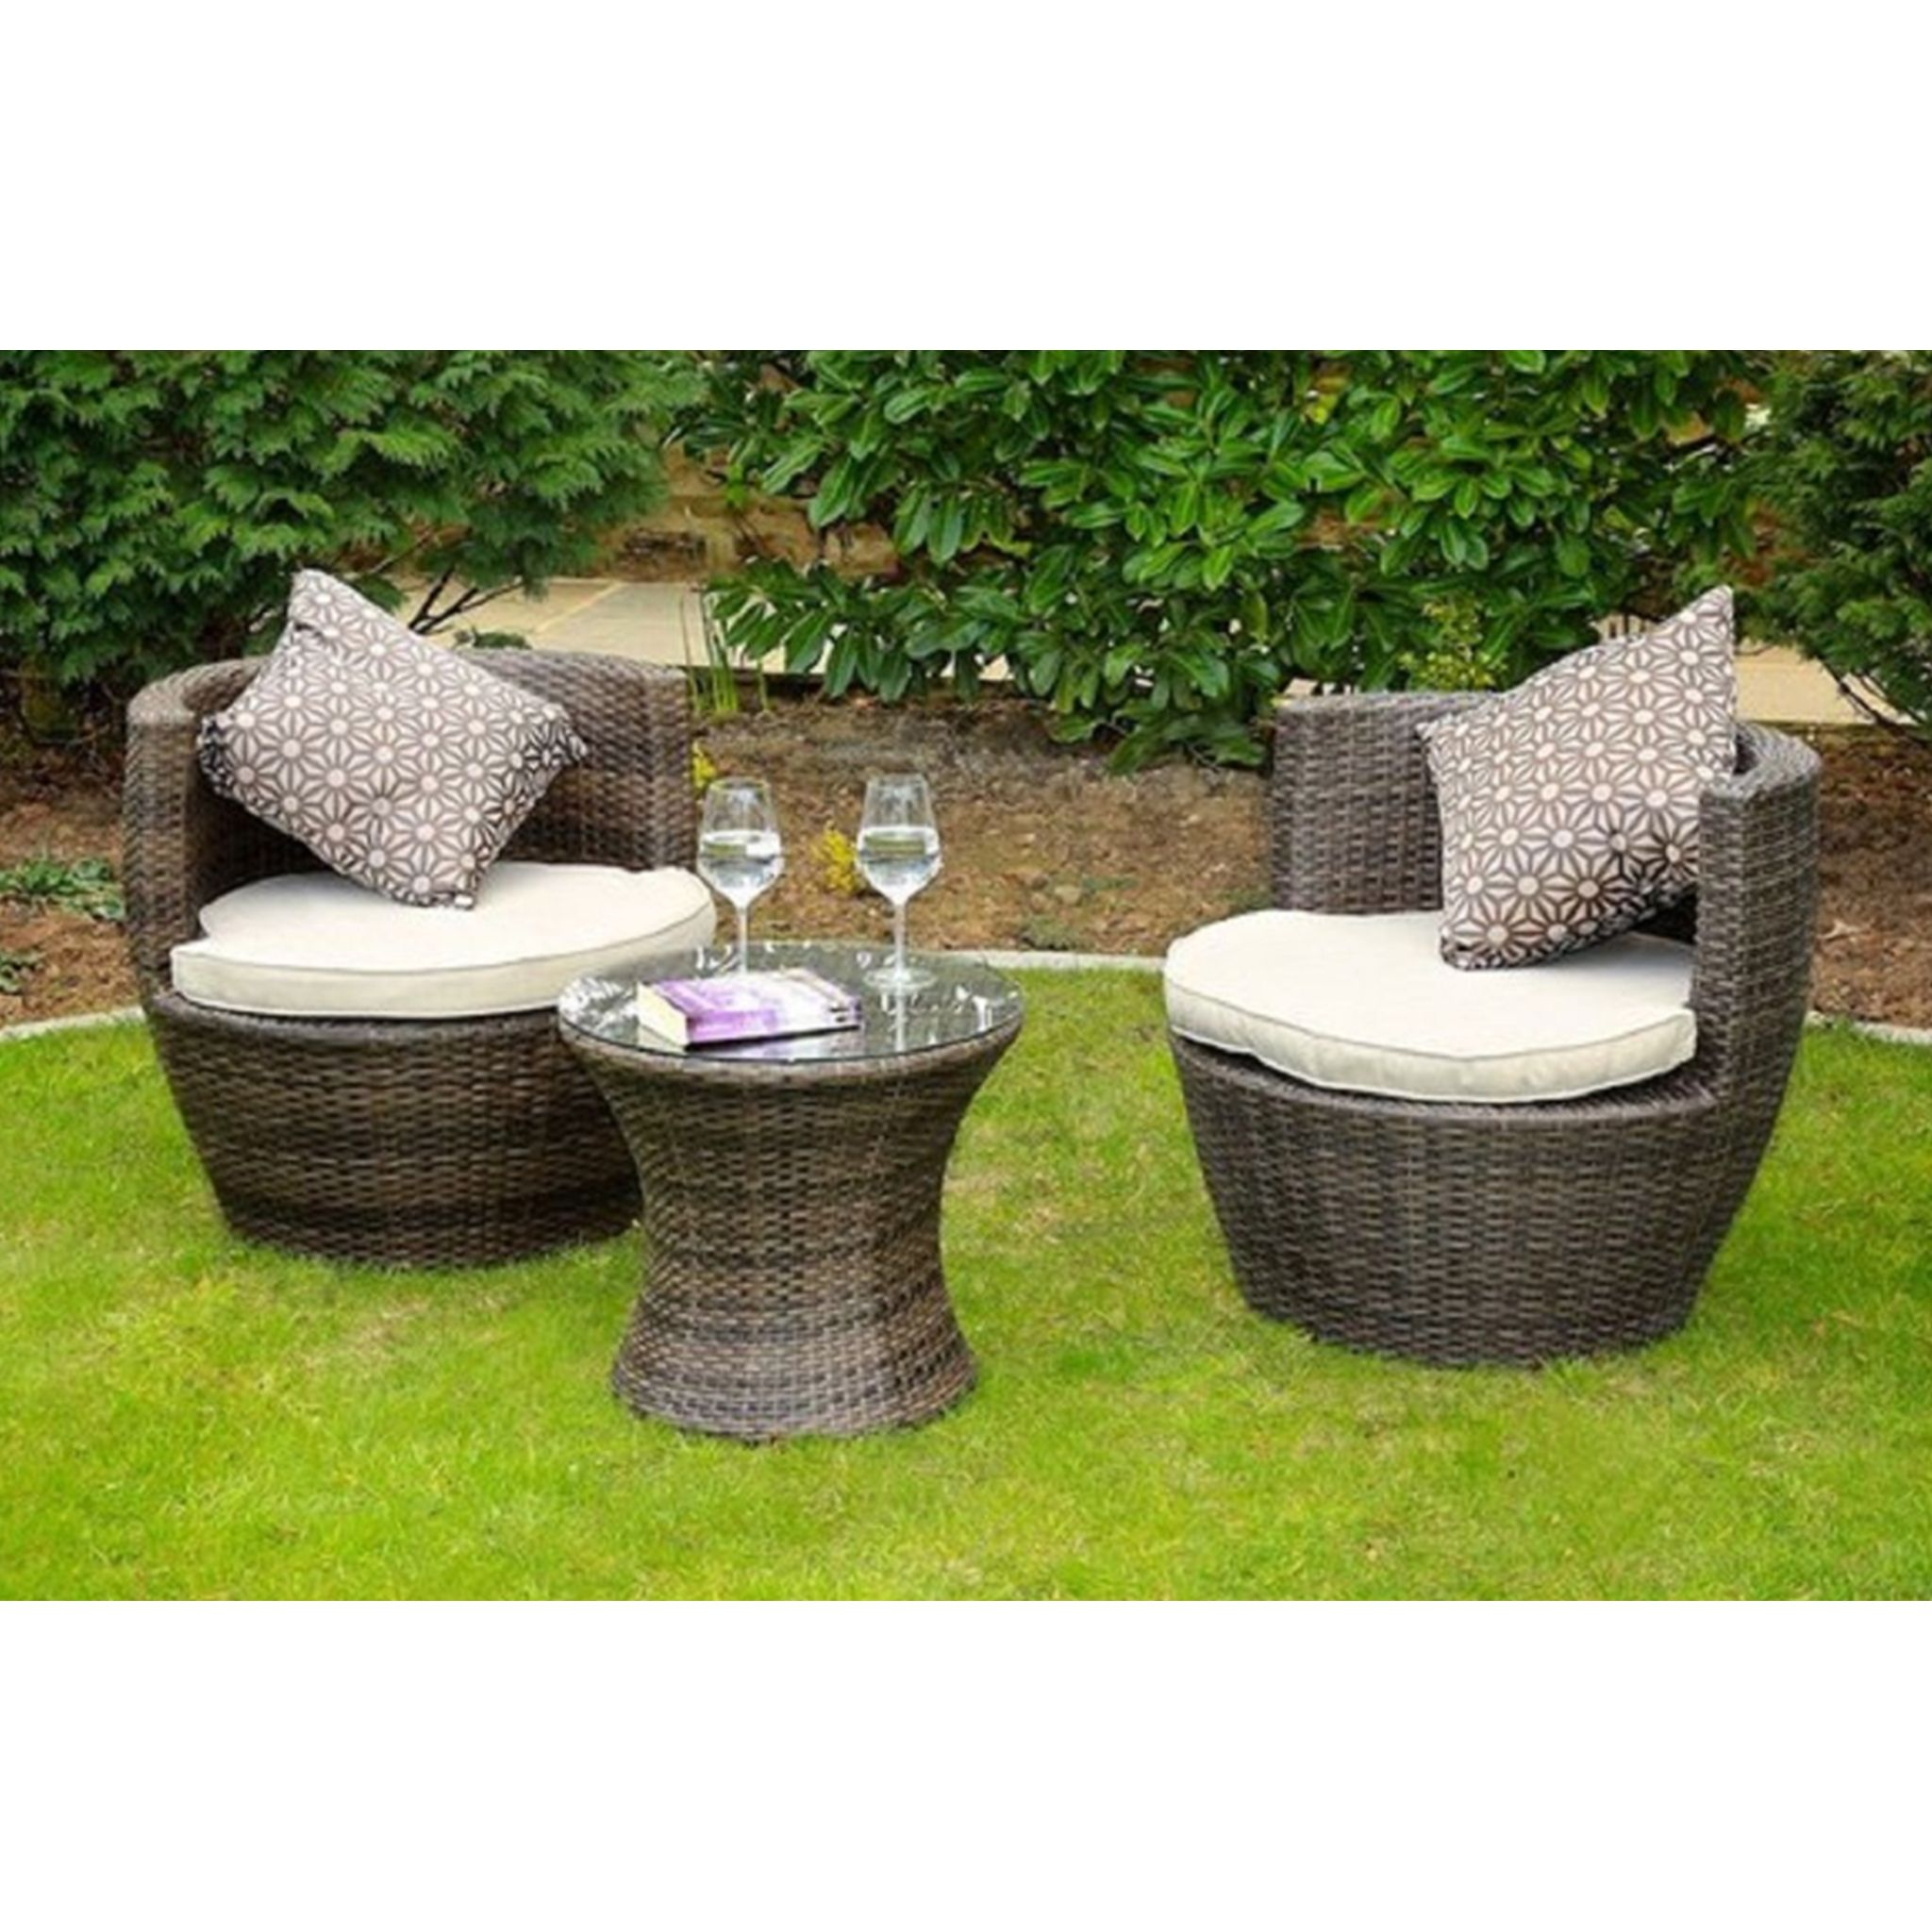 Madellaine Brown Outdoor Patio Dining Conversation Set 3 Piece Outdoor Patio Furniture Sets Patio Furniture Sets Outdoor Patio Furniture